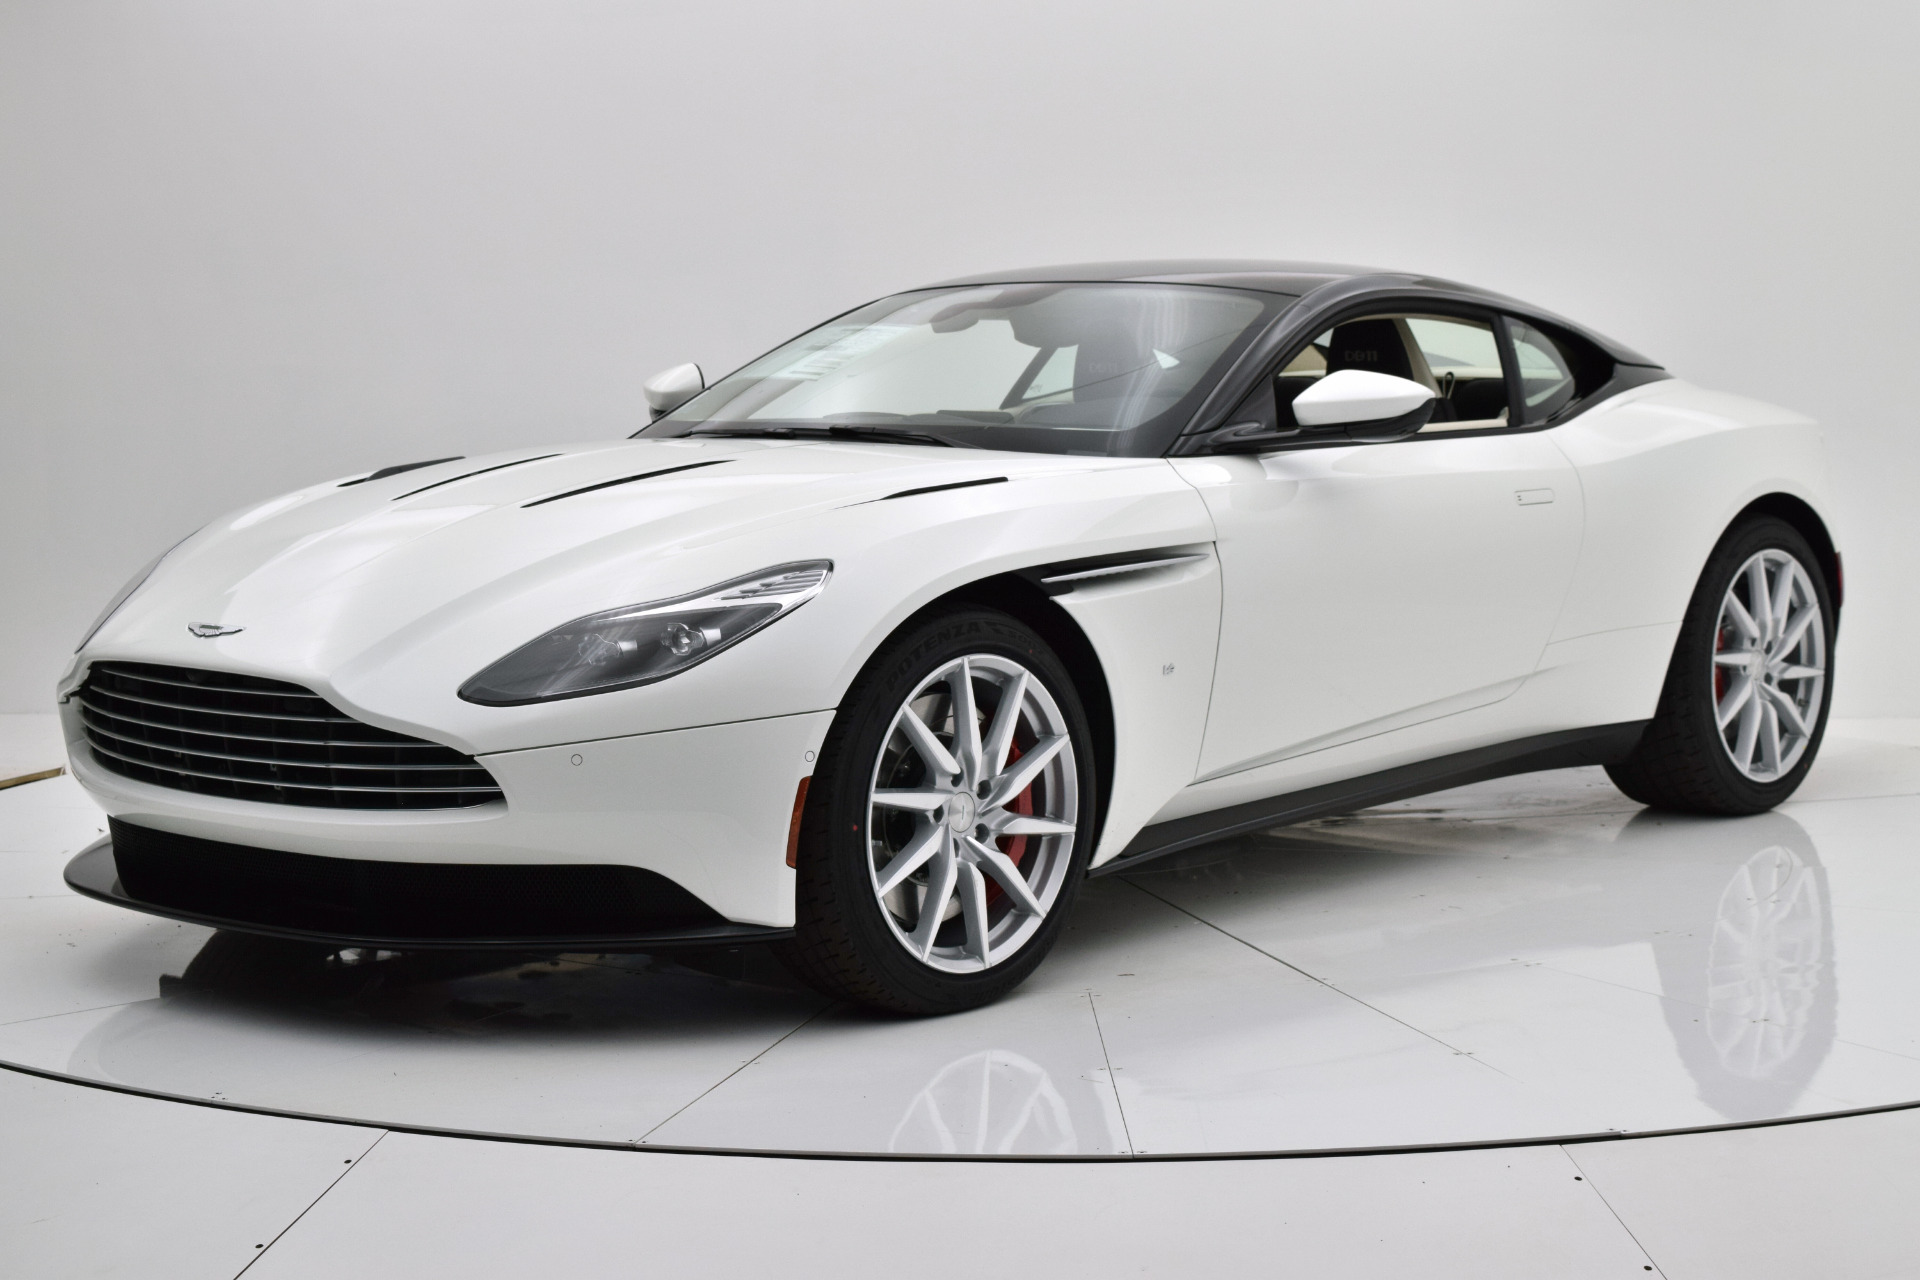 new 2017 aston martin db11 for sale 255 349 fc kerbeck aston martin stock 17a109. Black Bedroom Furniture Sets. Home Design Ideas